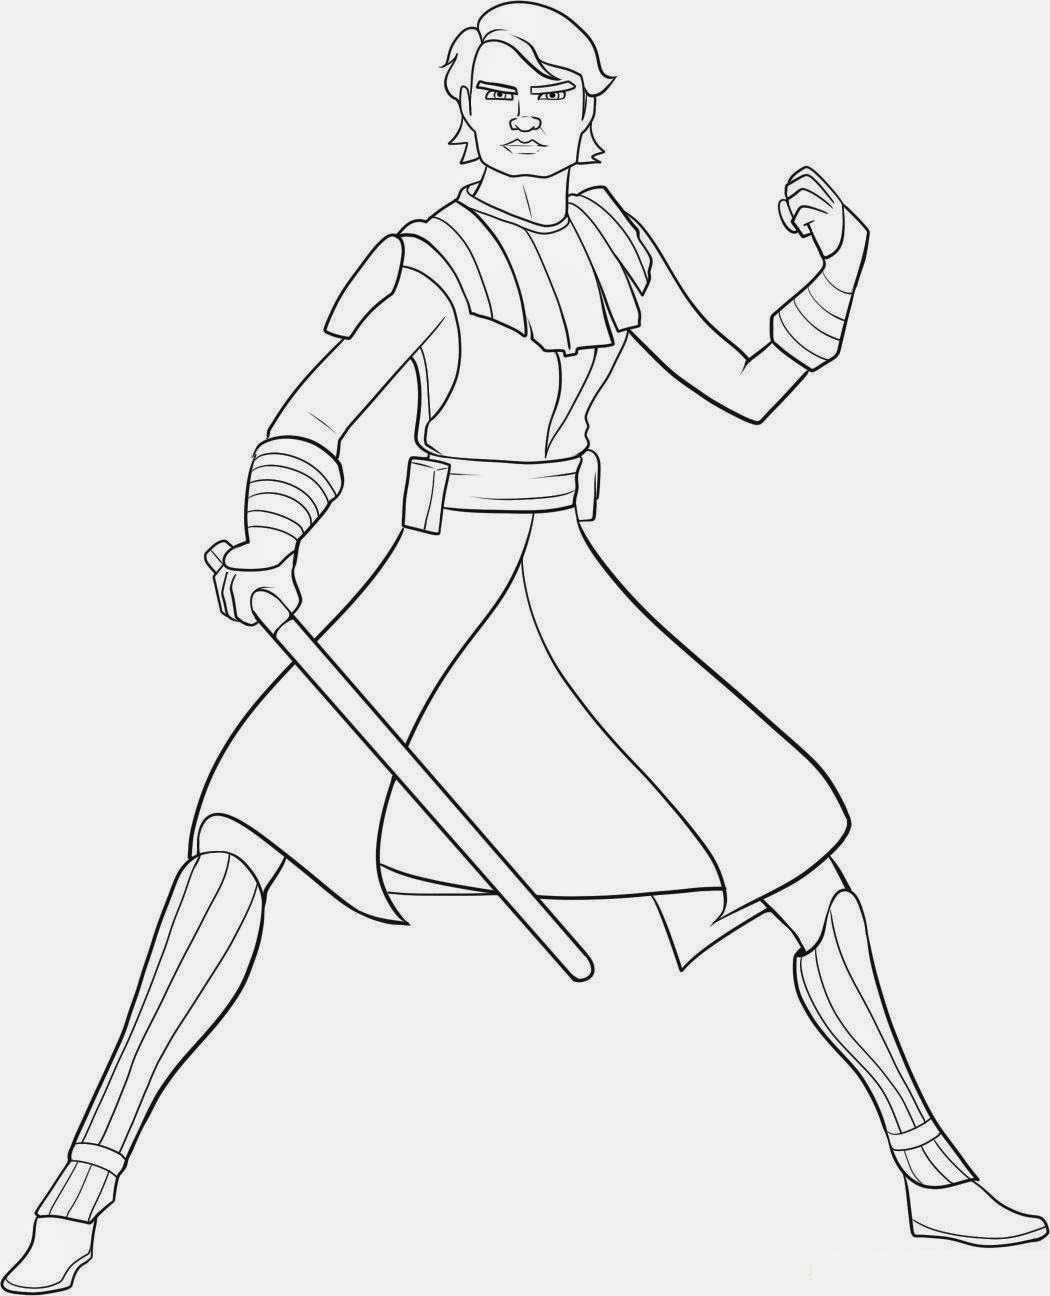 star wars coloring pages anakin skywalker anakin skywalker coloring page topcoloringpagesnet star coloring anakin skywalker pages wars